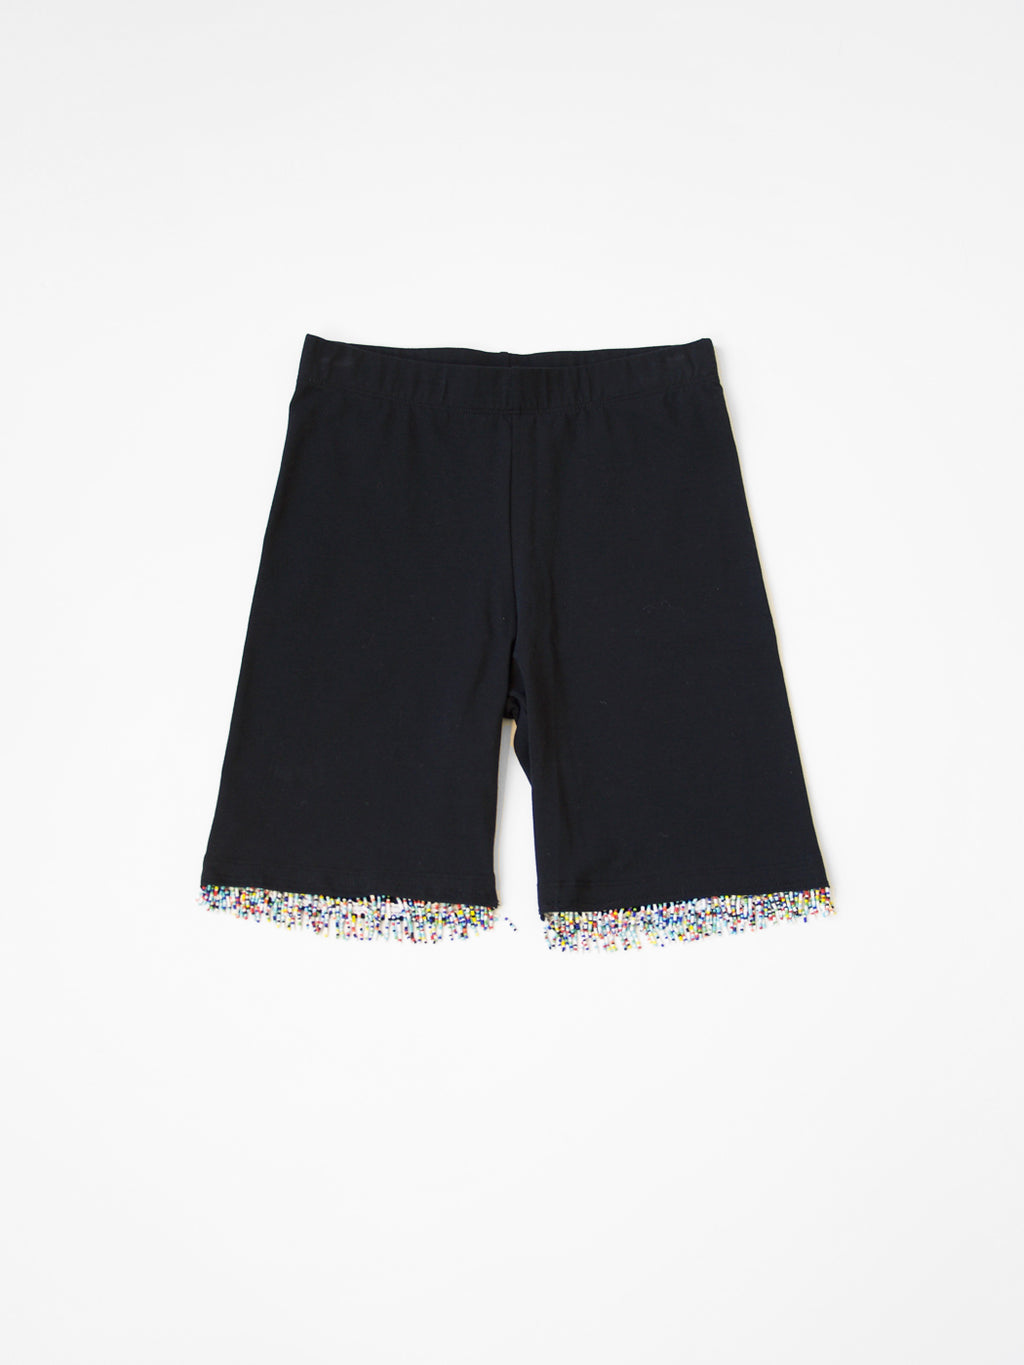 Beth - Beaded Bike Short / Black